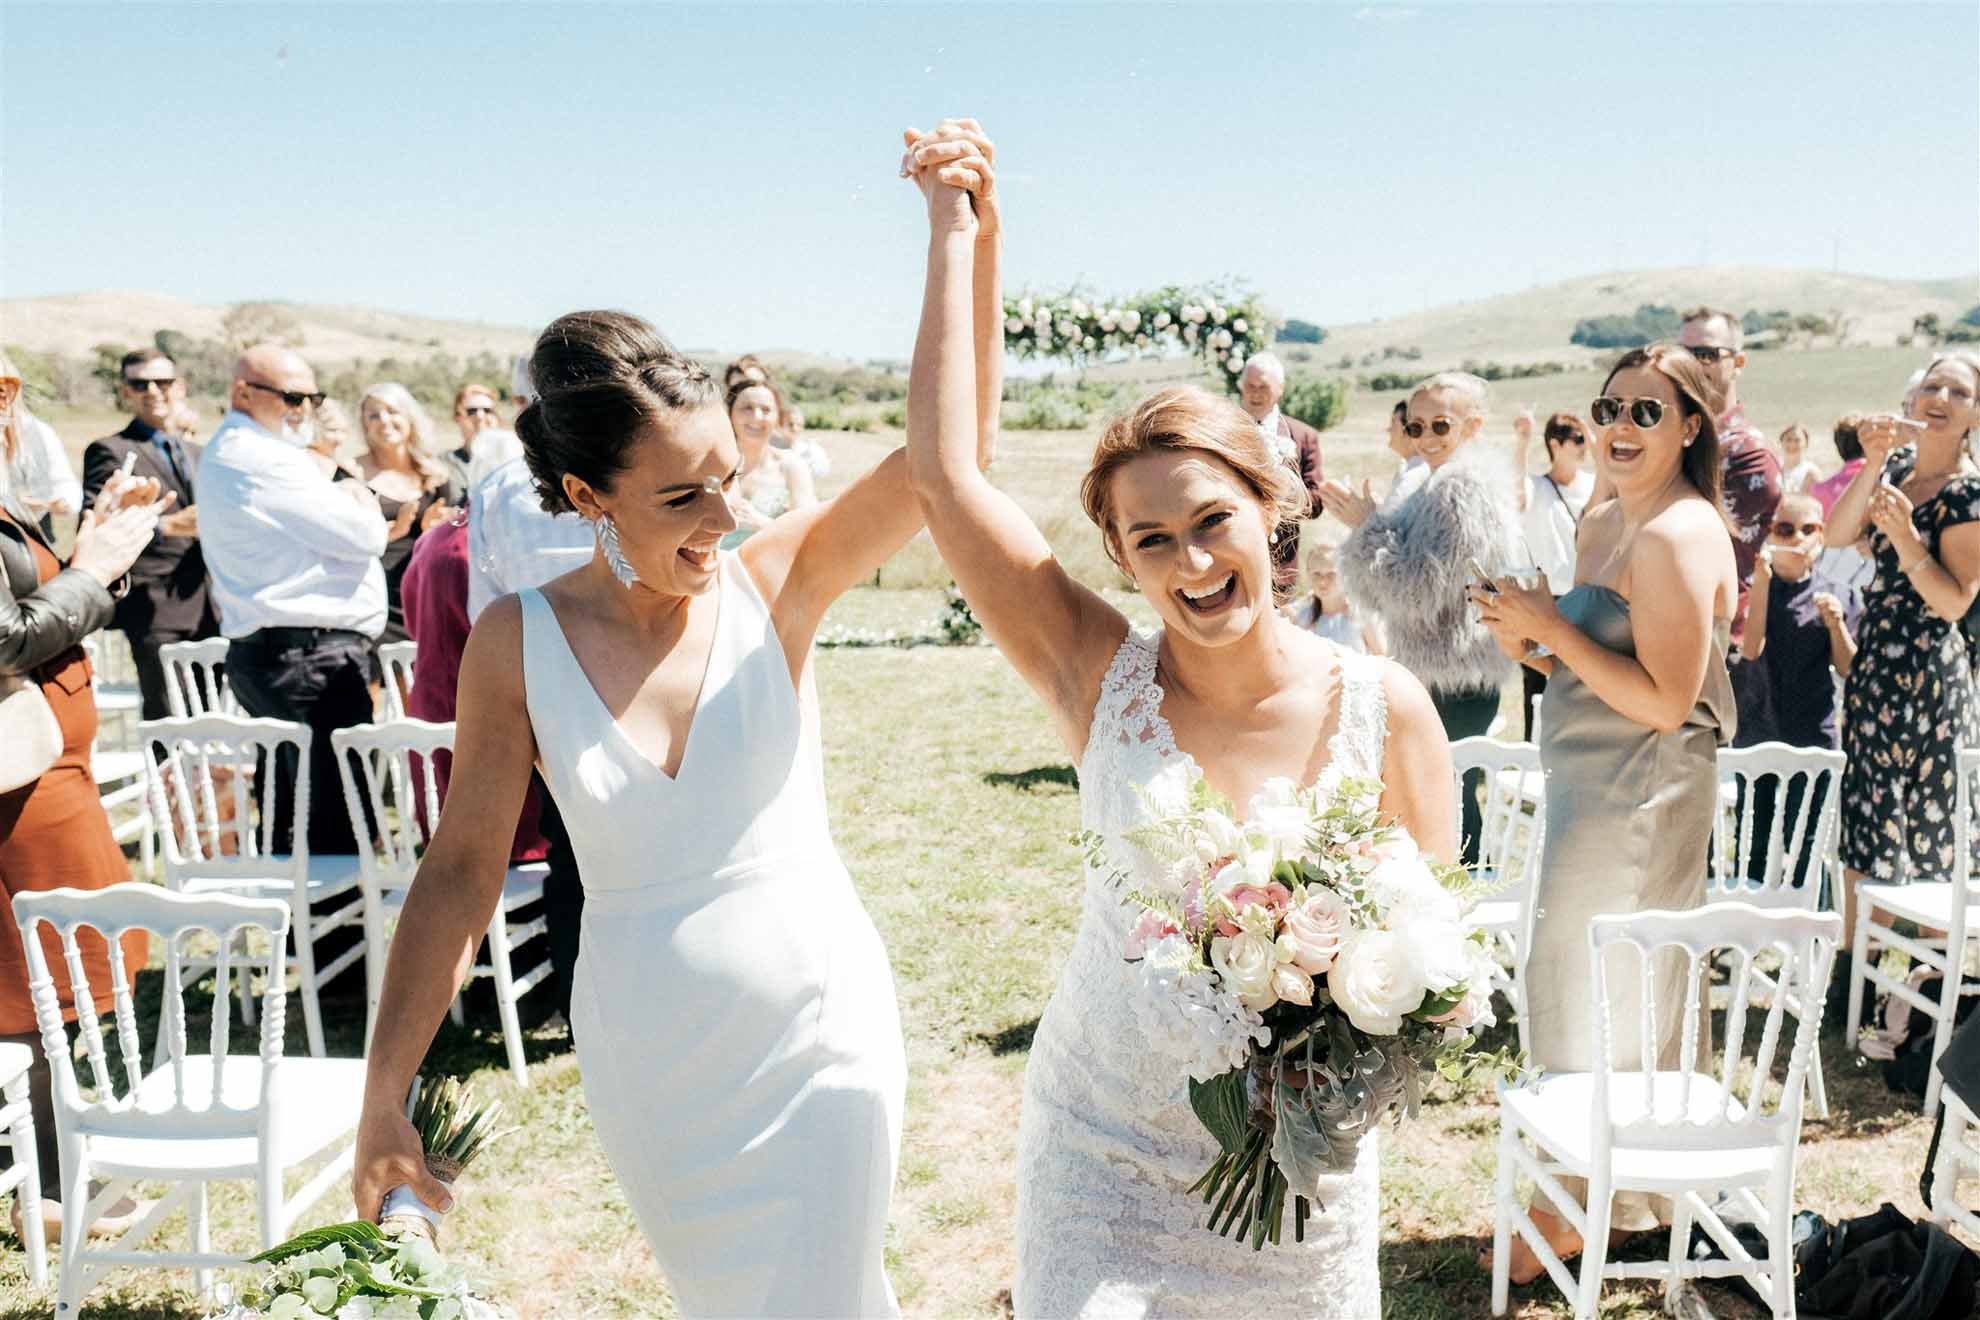 Henry Paul Photography lesbian lgbtq+ Australian farm country wedding New South Wales Dancing With Her magazine (1)